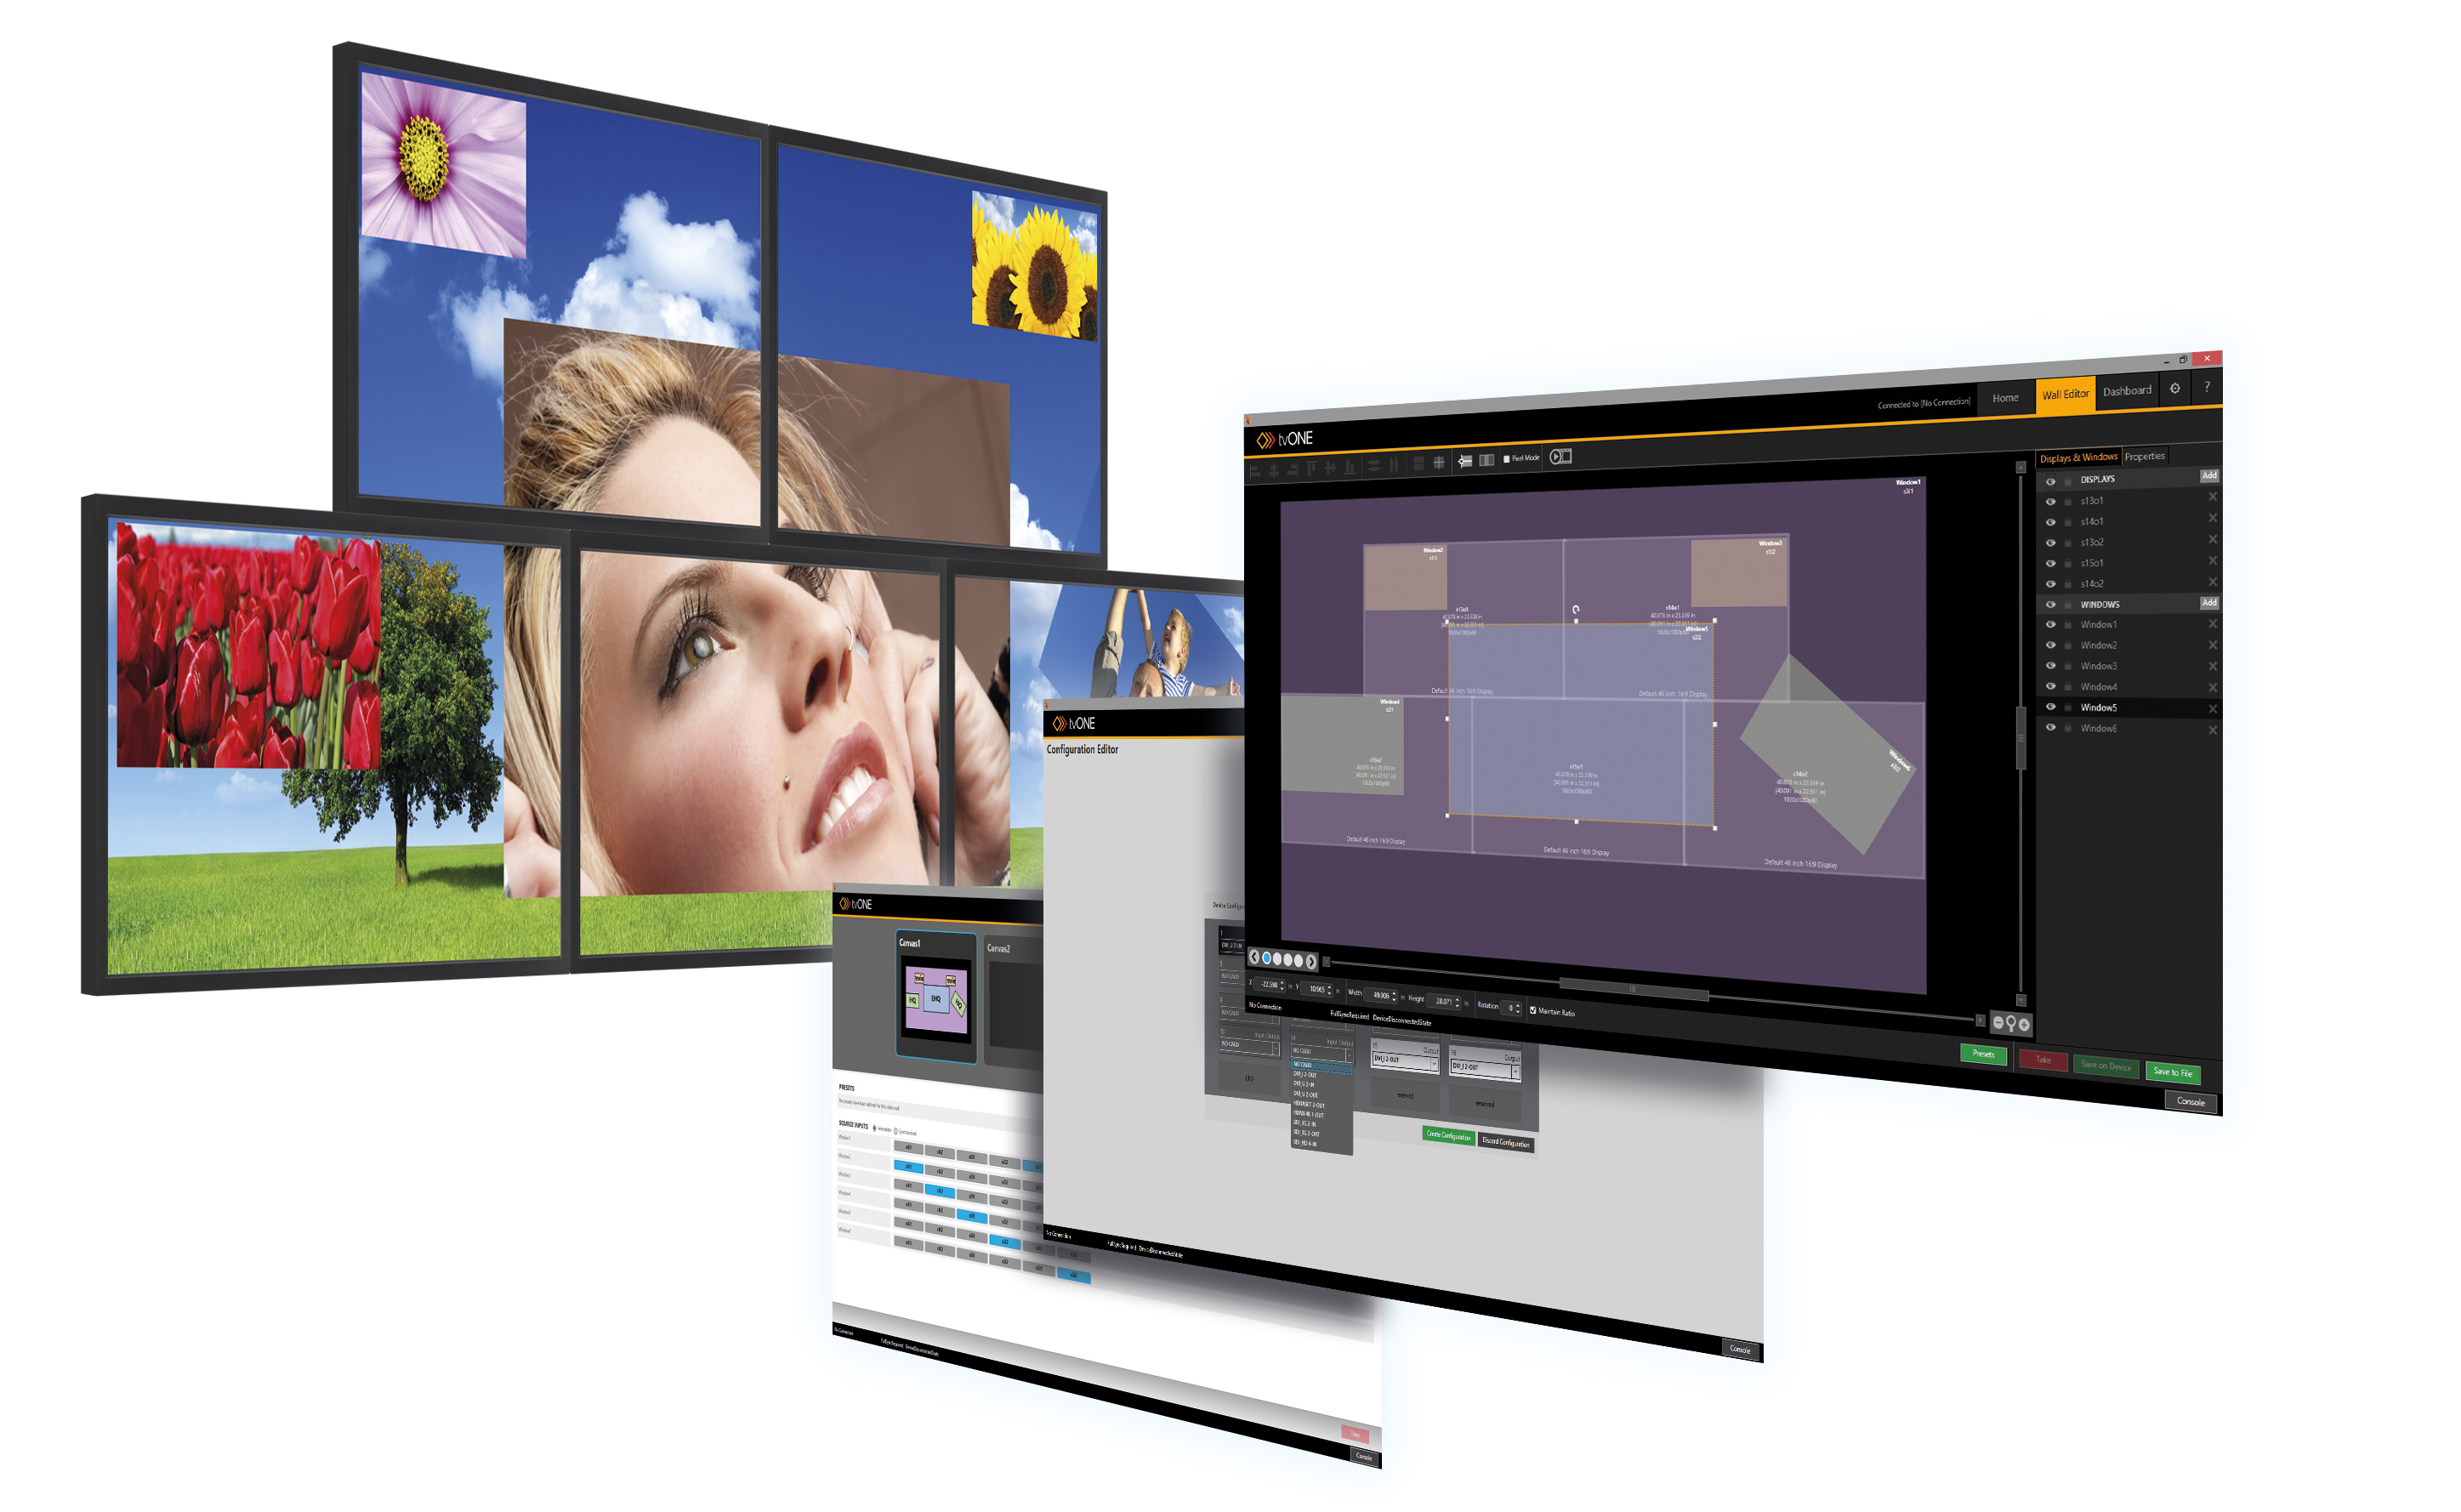 creative video wall design software for coriomaster coriomaster mini video wall processors - Video Wall Design